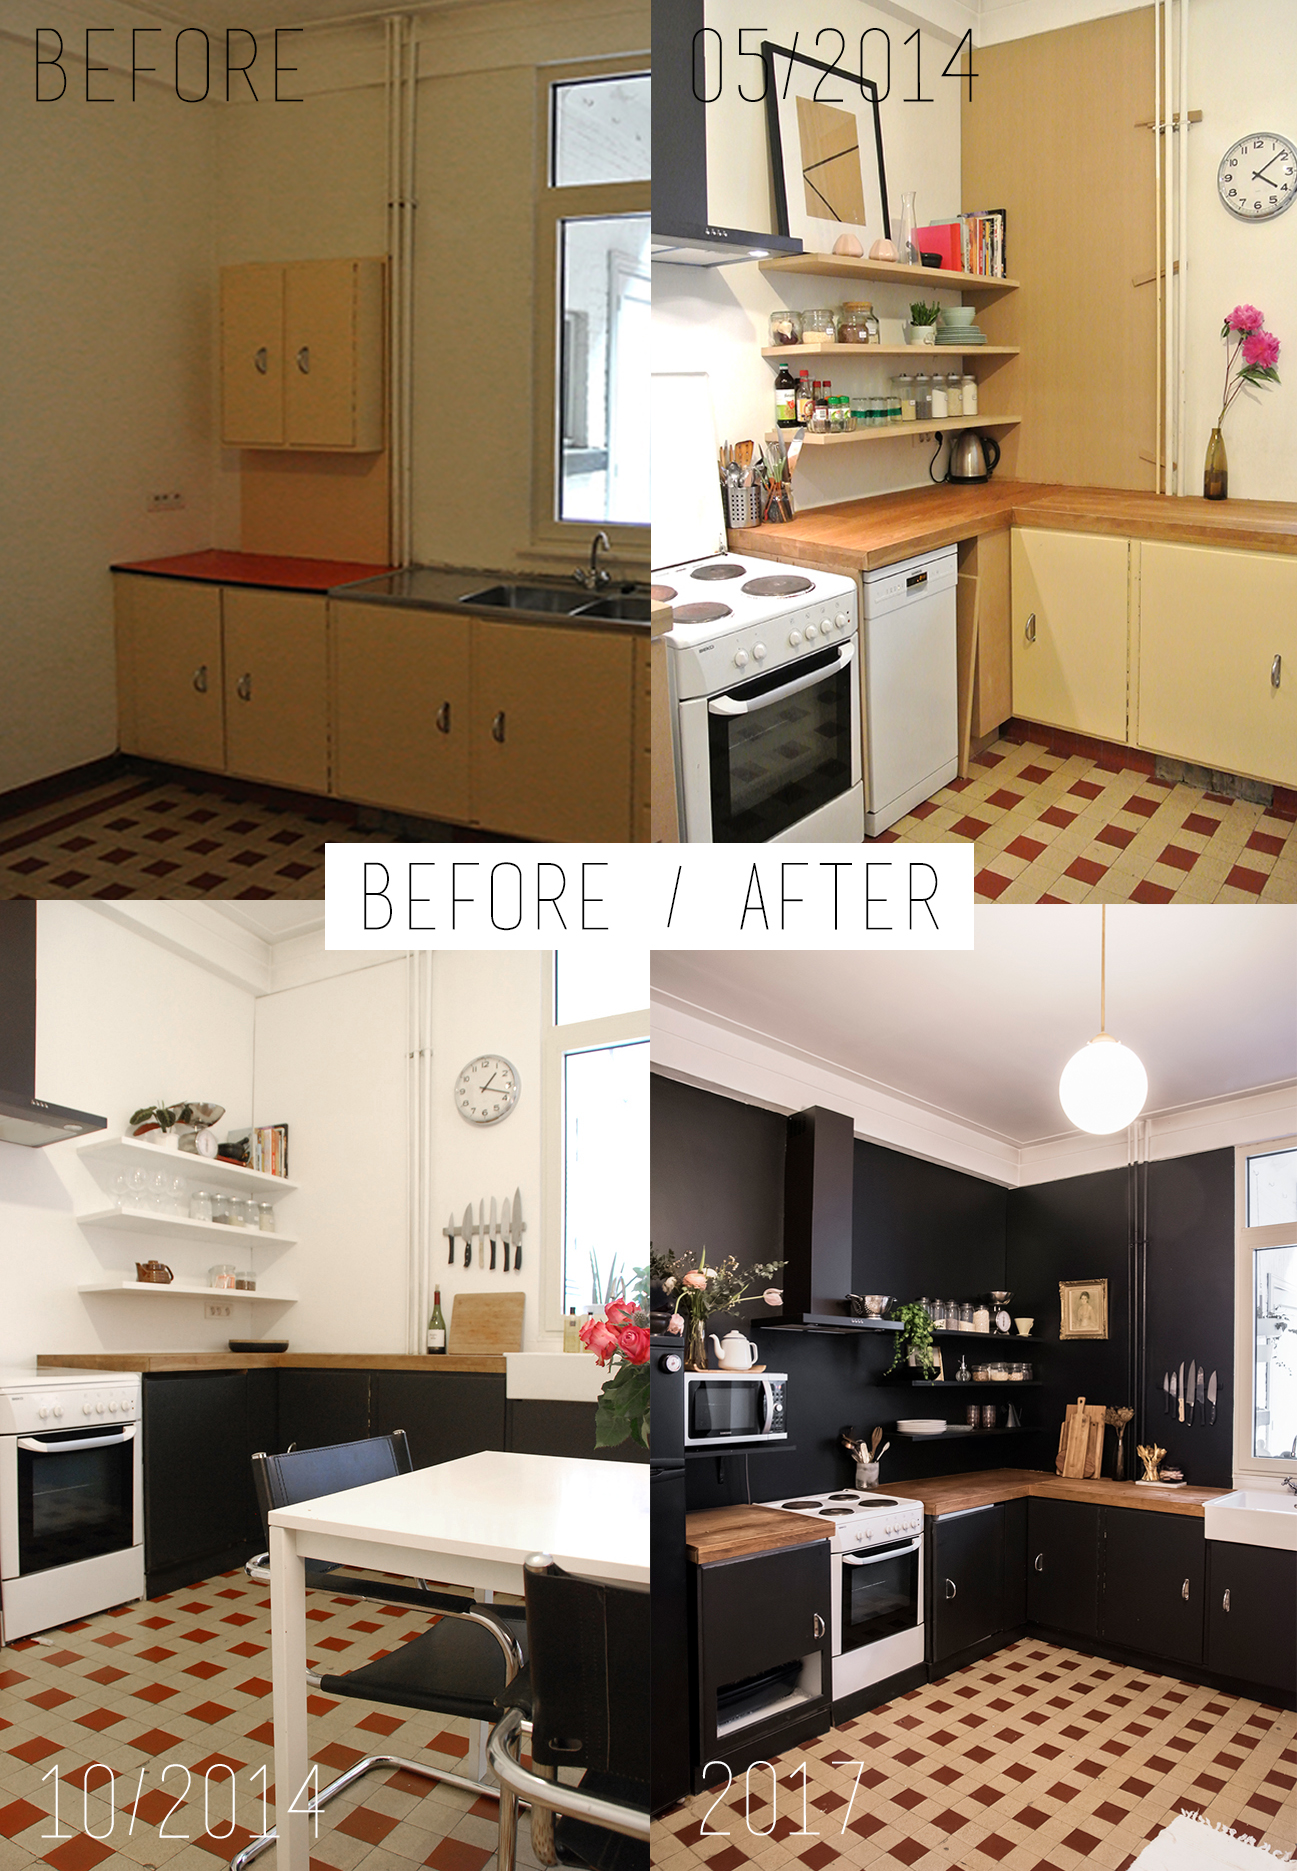 Home Renovation: Black Walls in the Kitchen / No Glitter No Glory / Before & After